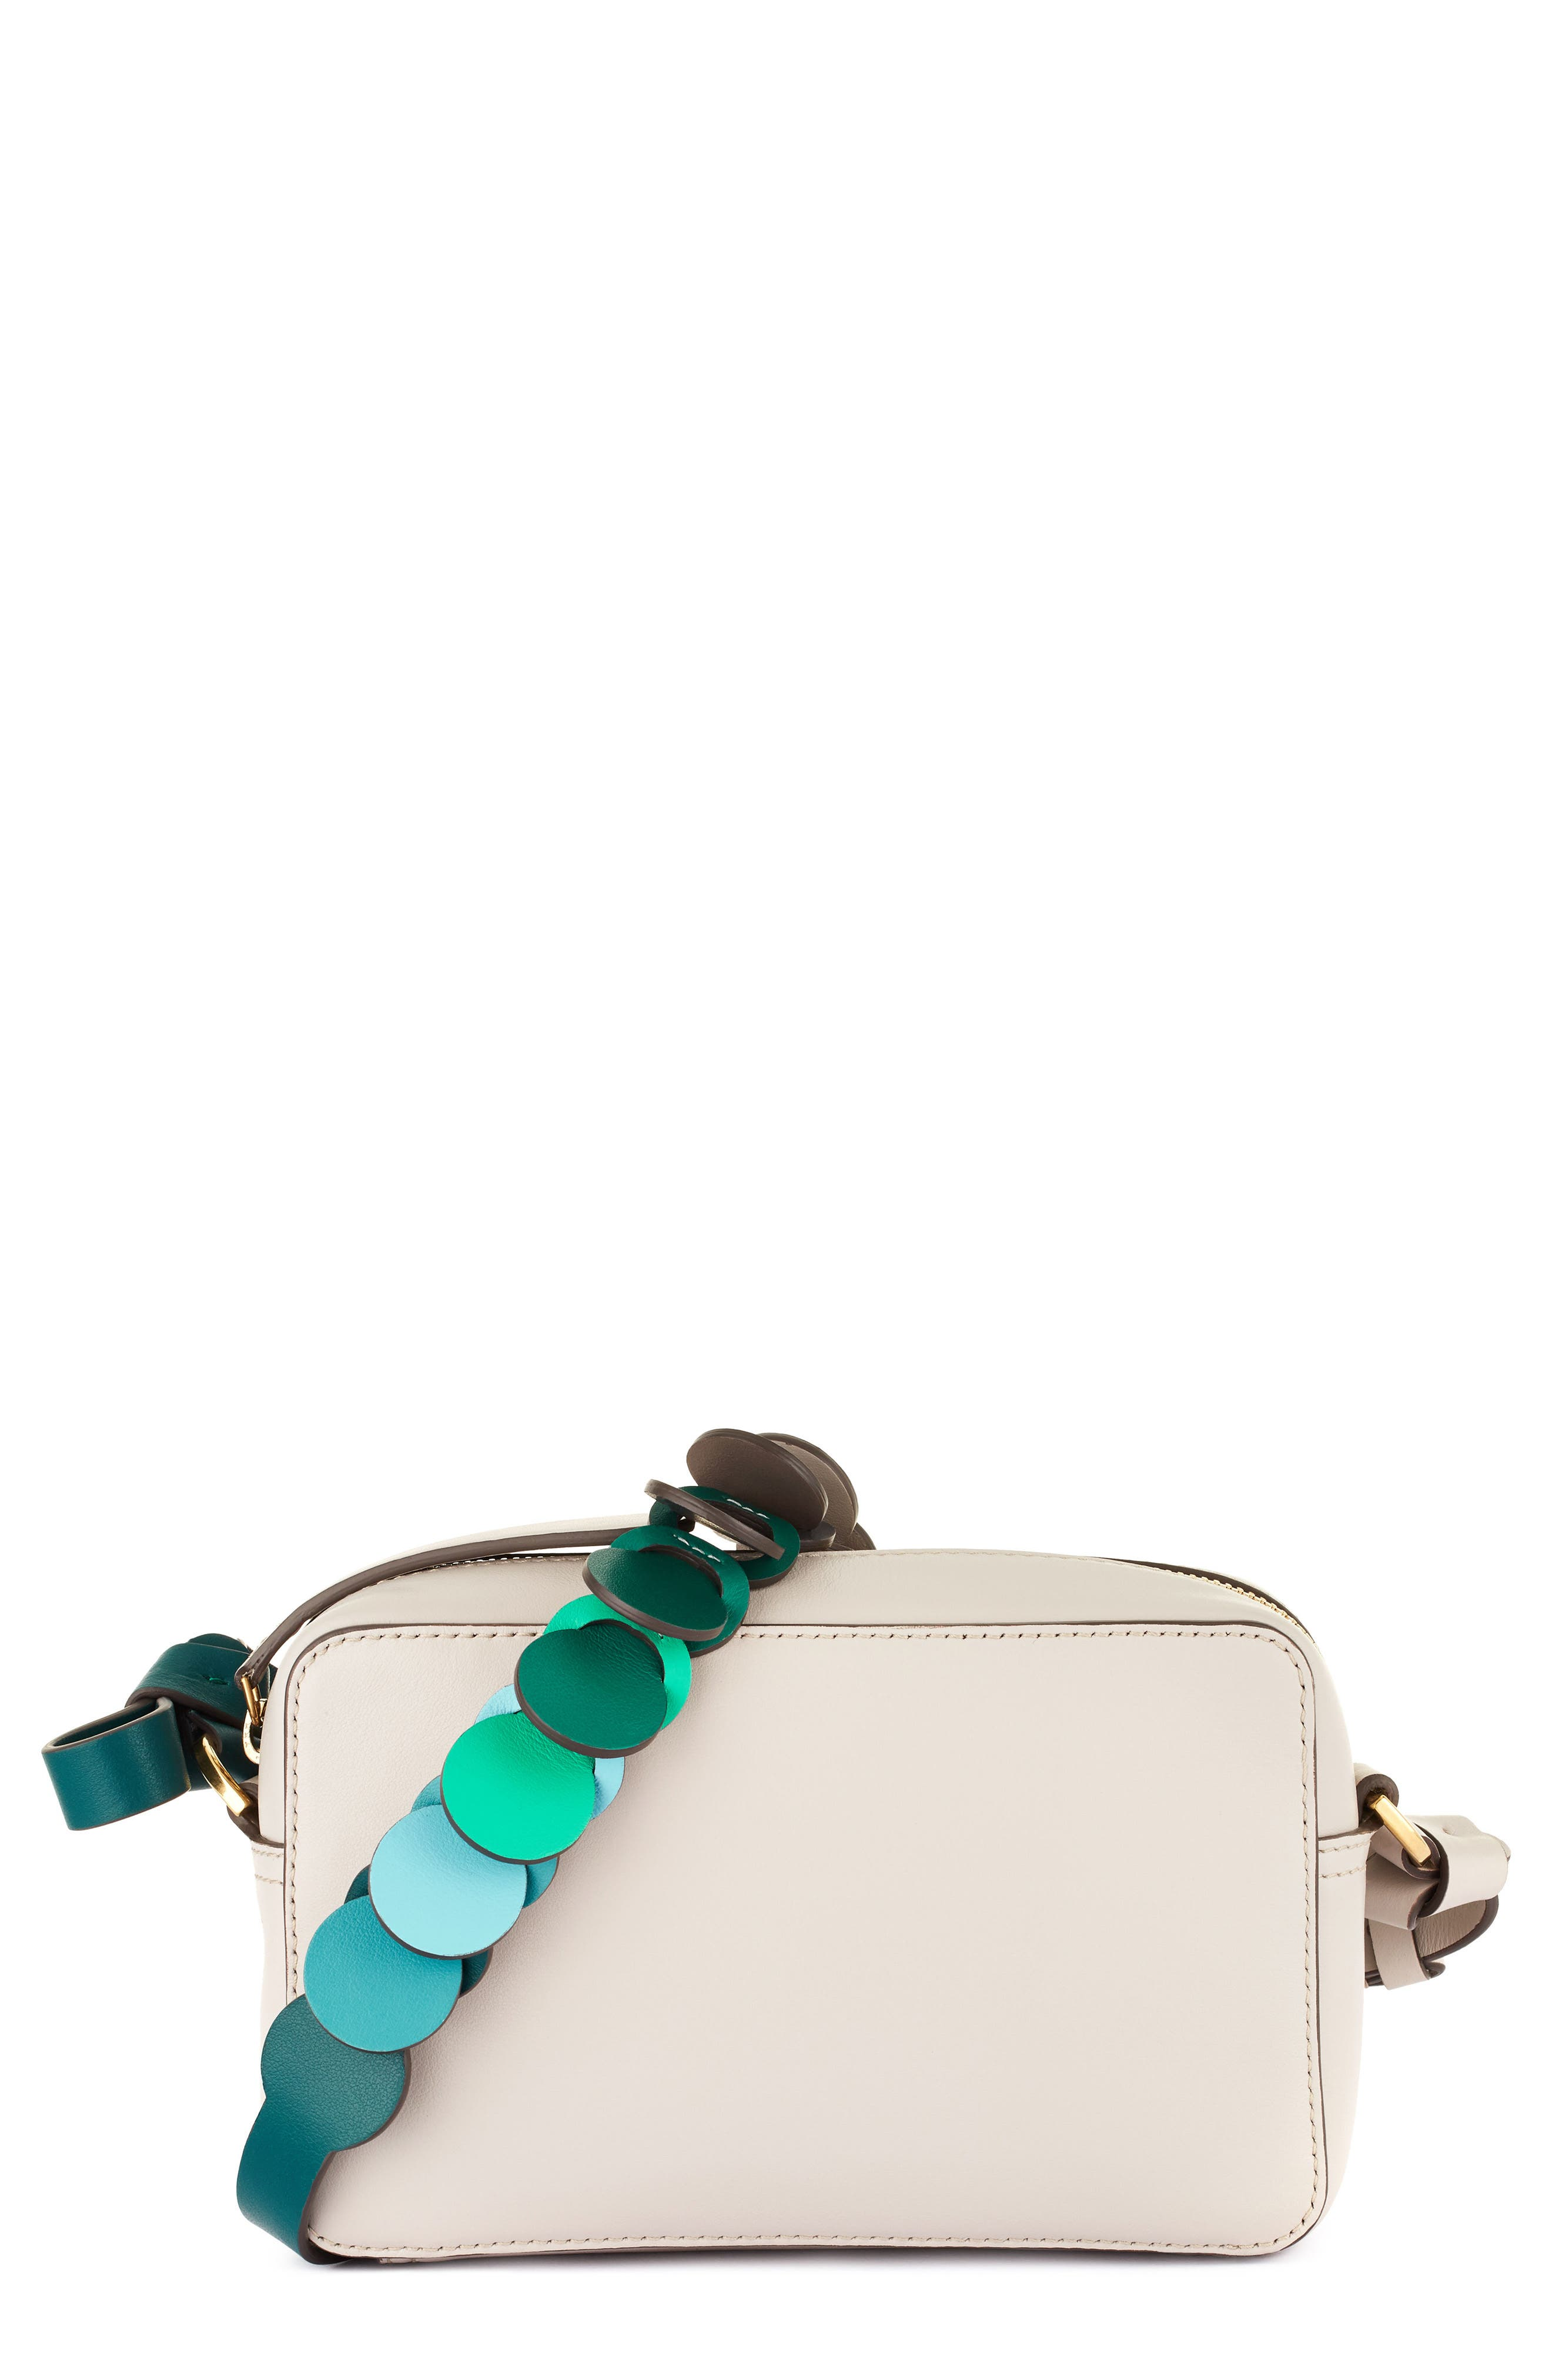 Anya Hindmarch Camera Leather Crossbody With Link Strap